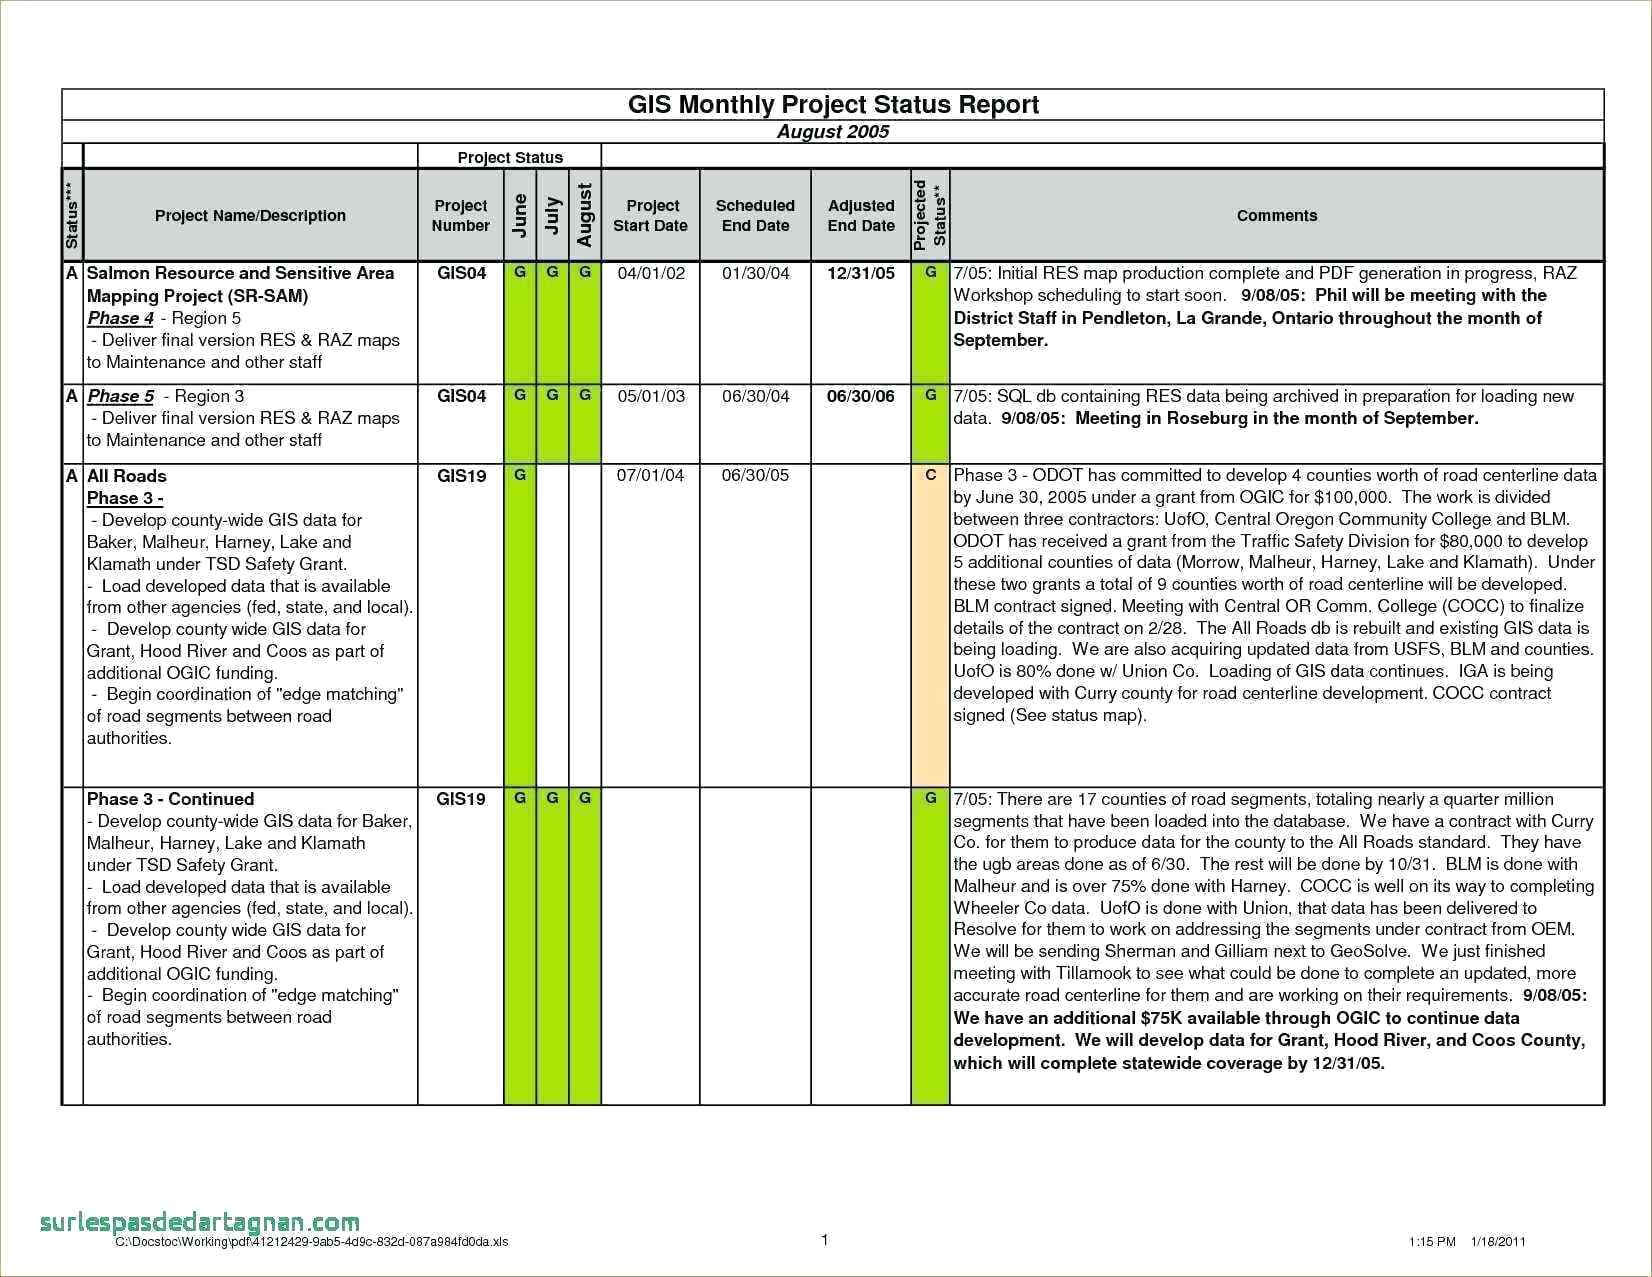 032 Construction Daily Progress Report Template Free Project Within Project Status Report Template Excel Download Filetype Xls